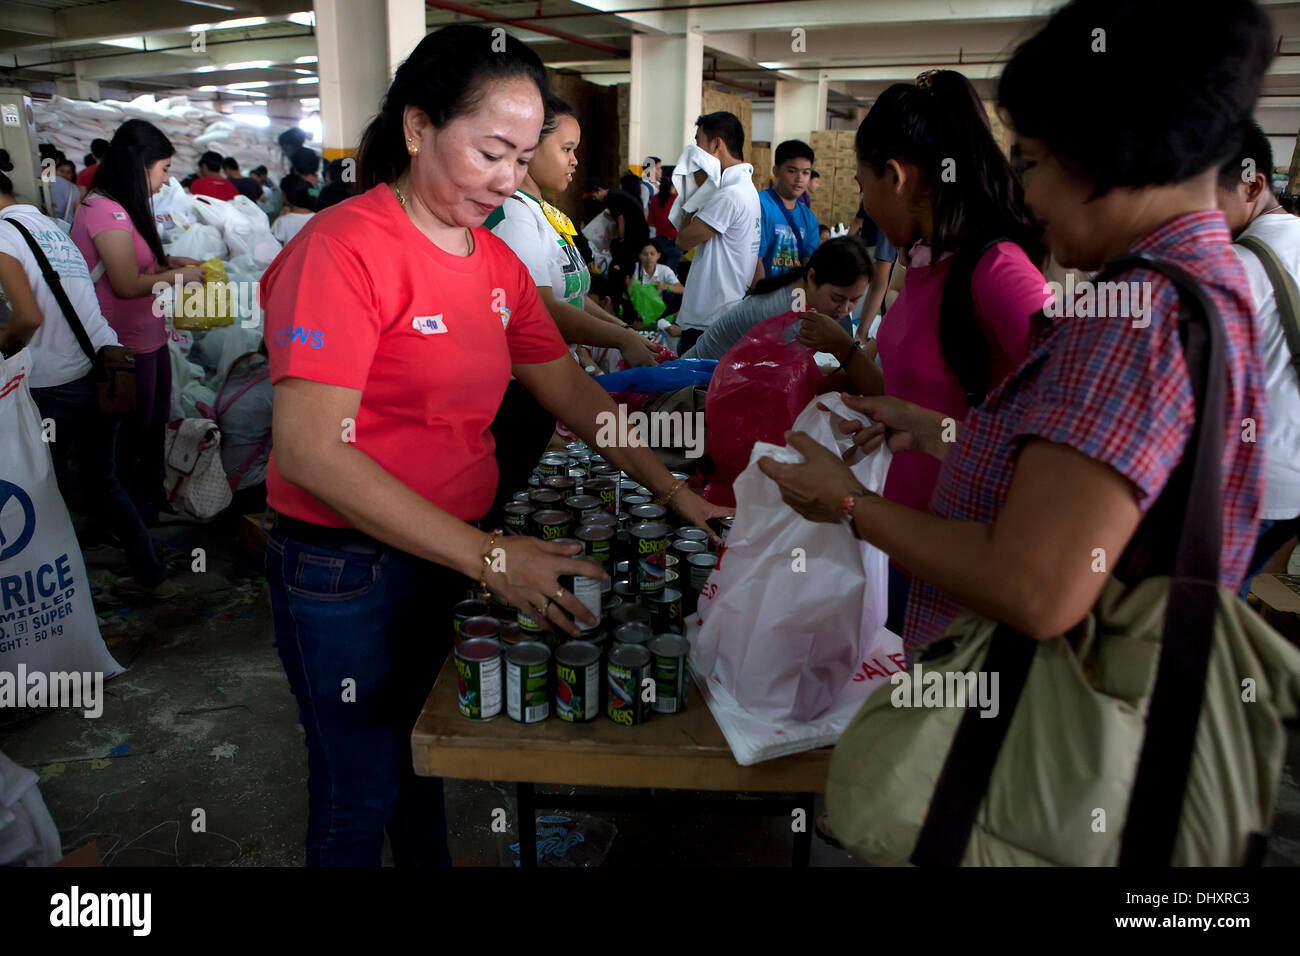 International Convention Centre,Cebu City 16/11/2013. A Cebu City initiative involving a number of Government Agencies in the aftermath of Typhoon Haiyan/Yolanda. A 24hr relief aid operation involves the receiving and re-packing of food items destined for the hardest hit areas. Volunteers are mainly students. Relief packs contain 6 kilos of rice,5 tins of sardines,5 tins of corned beef/beef loaf. - Stock Image